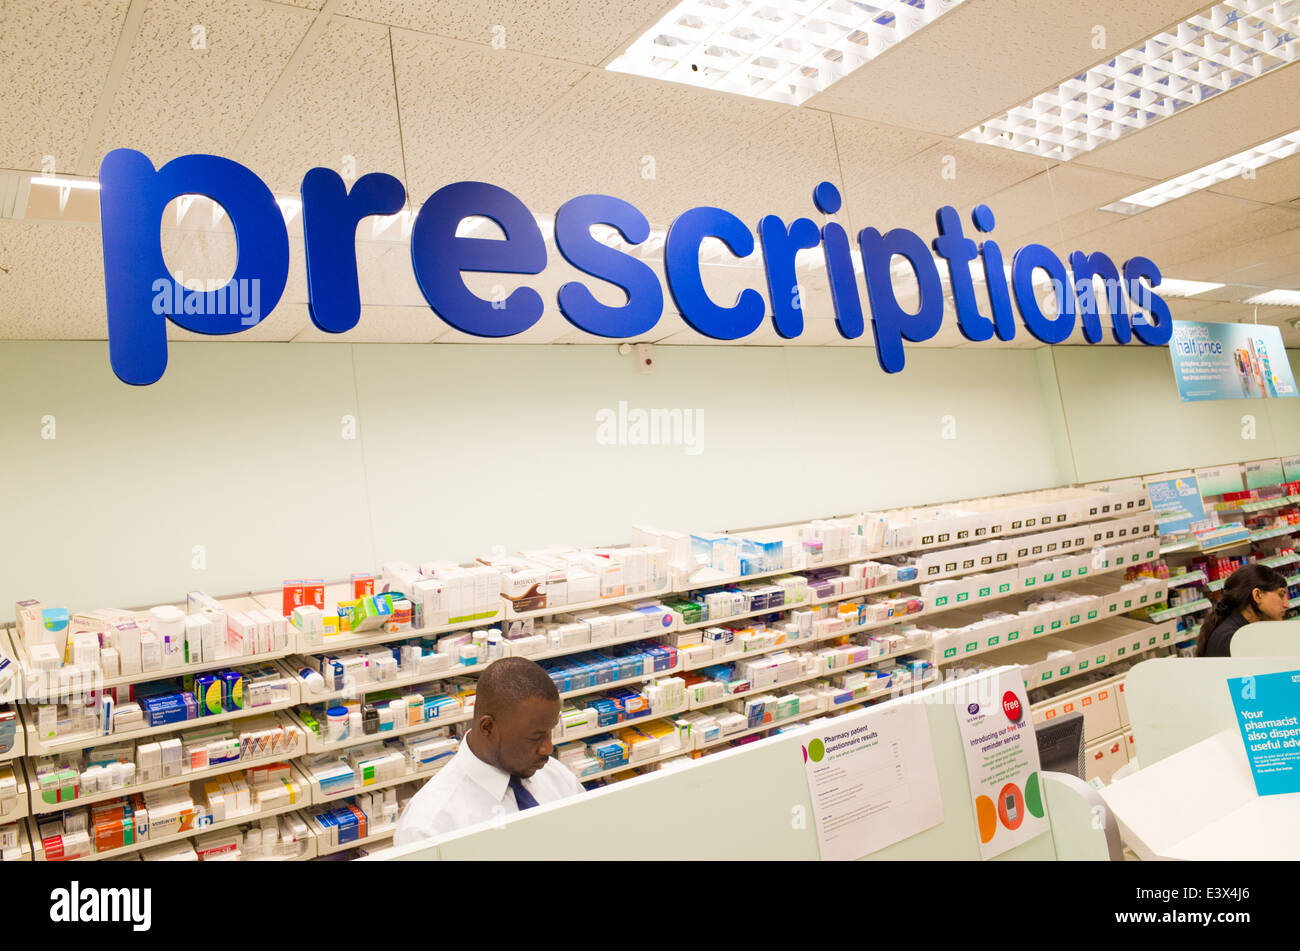 Prescriptions counter at Boots pharmacy, England, UK - Stock Image